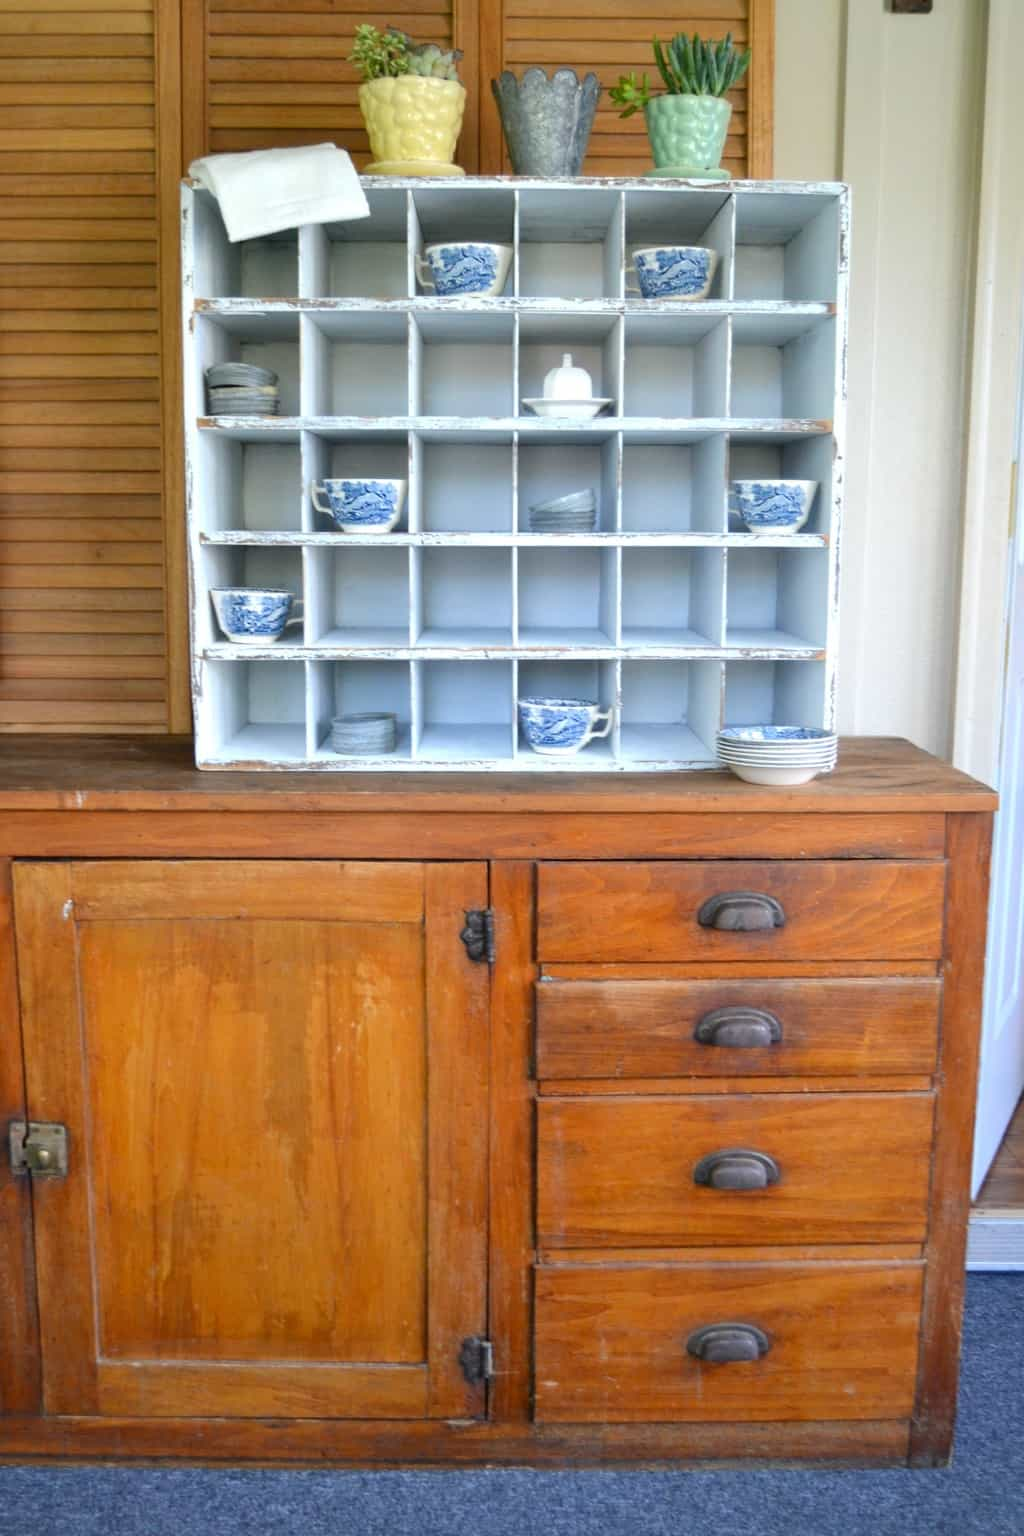 Knock Offs Toy Meets World: Pottery Barn Cubby Knock-Off In 20 Minutes